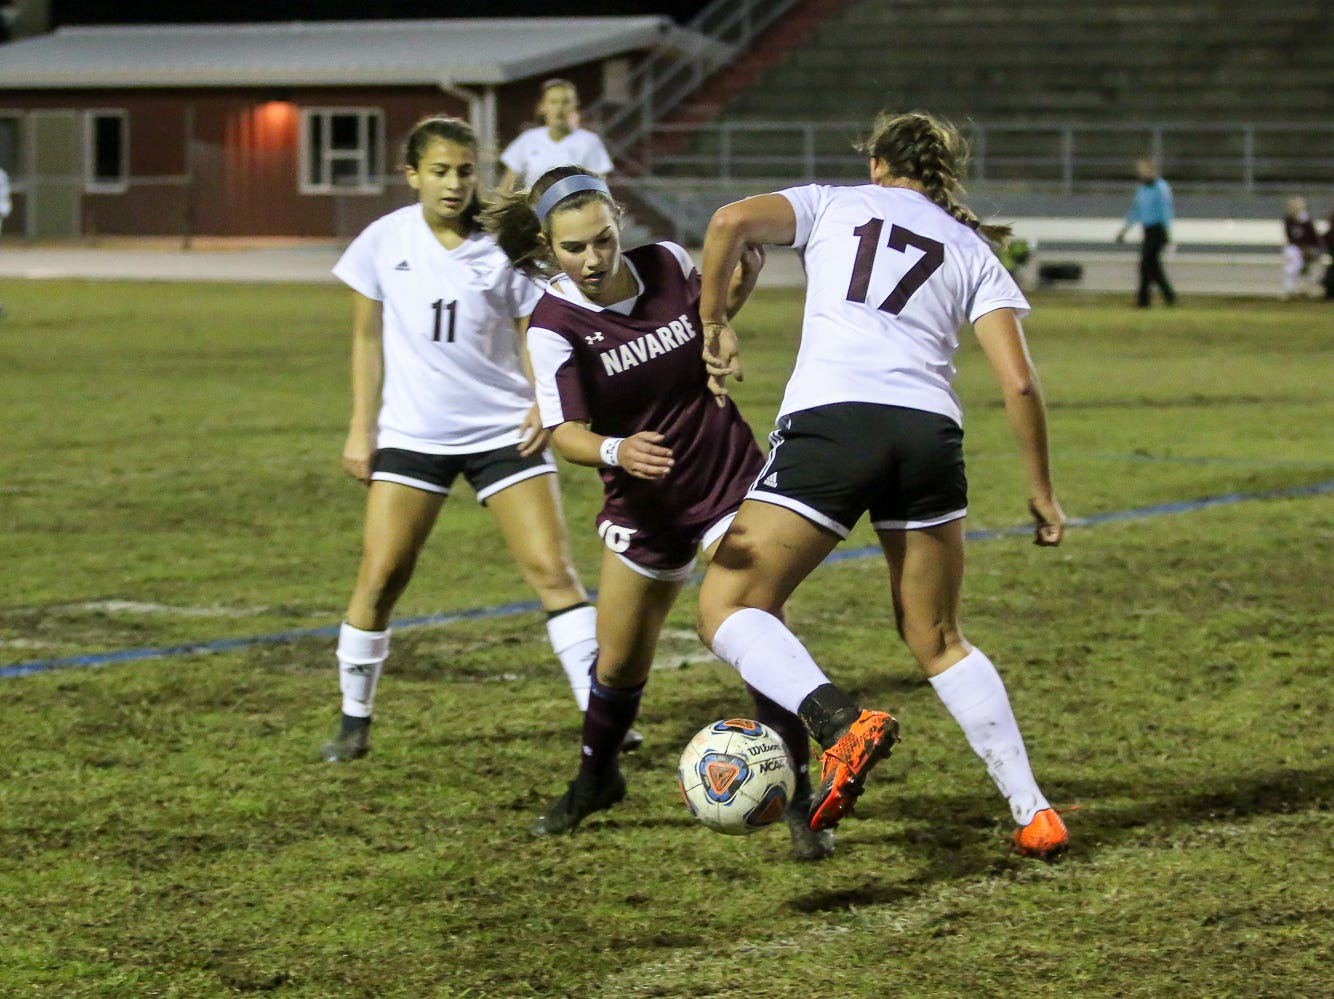 Navarre's Skylar Woods (18) and Niceville's Mia Sadler (17) collide into each other while battling for the ball in a District 1-4A showdown of unbeaten teams at Navarre High School on Tuesday, December 4, 2018. The game ended in a 1-1 tie.